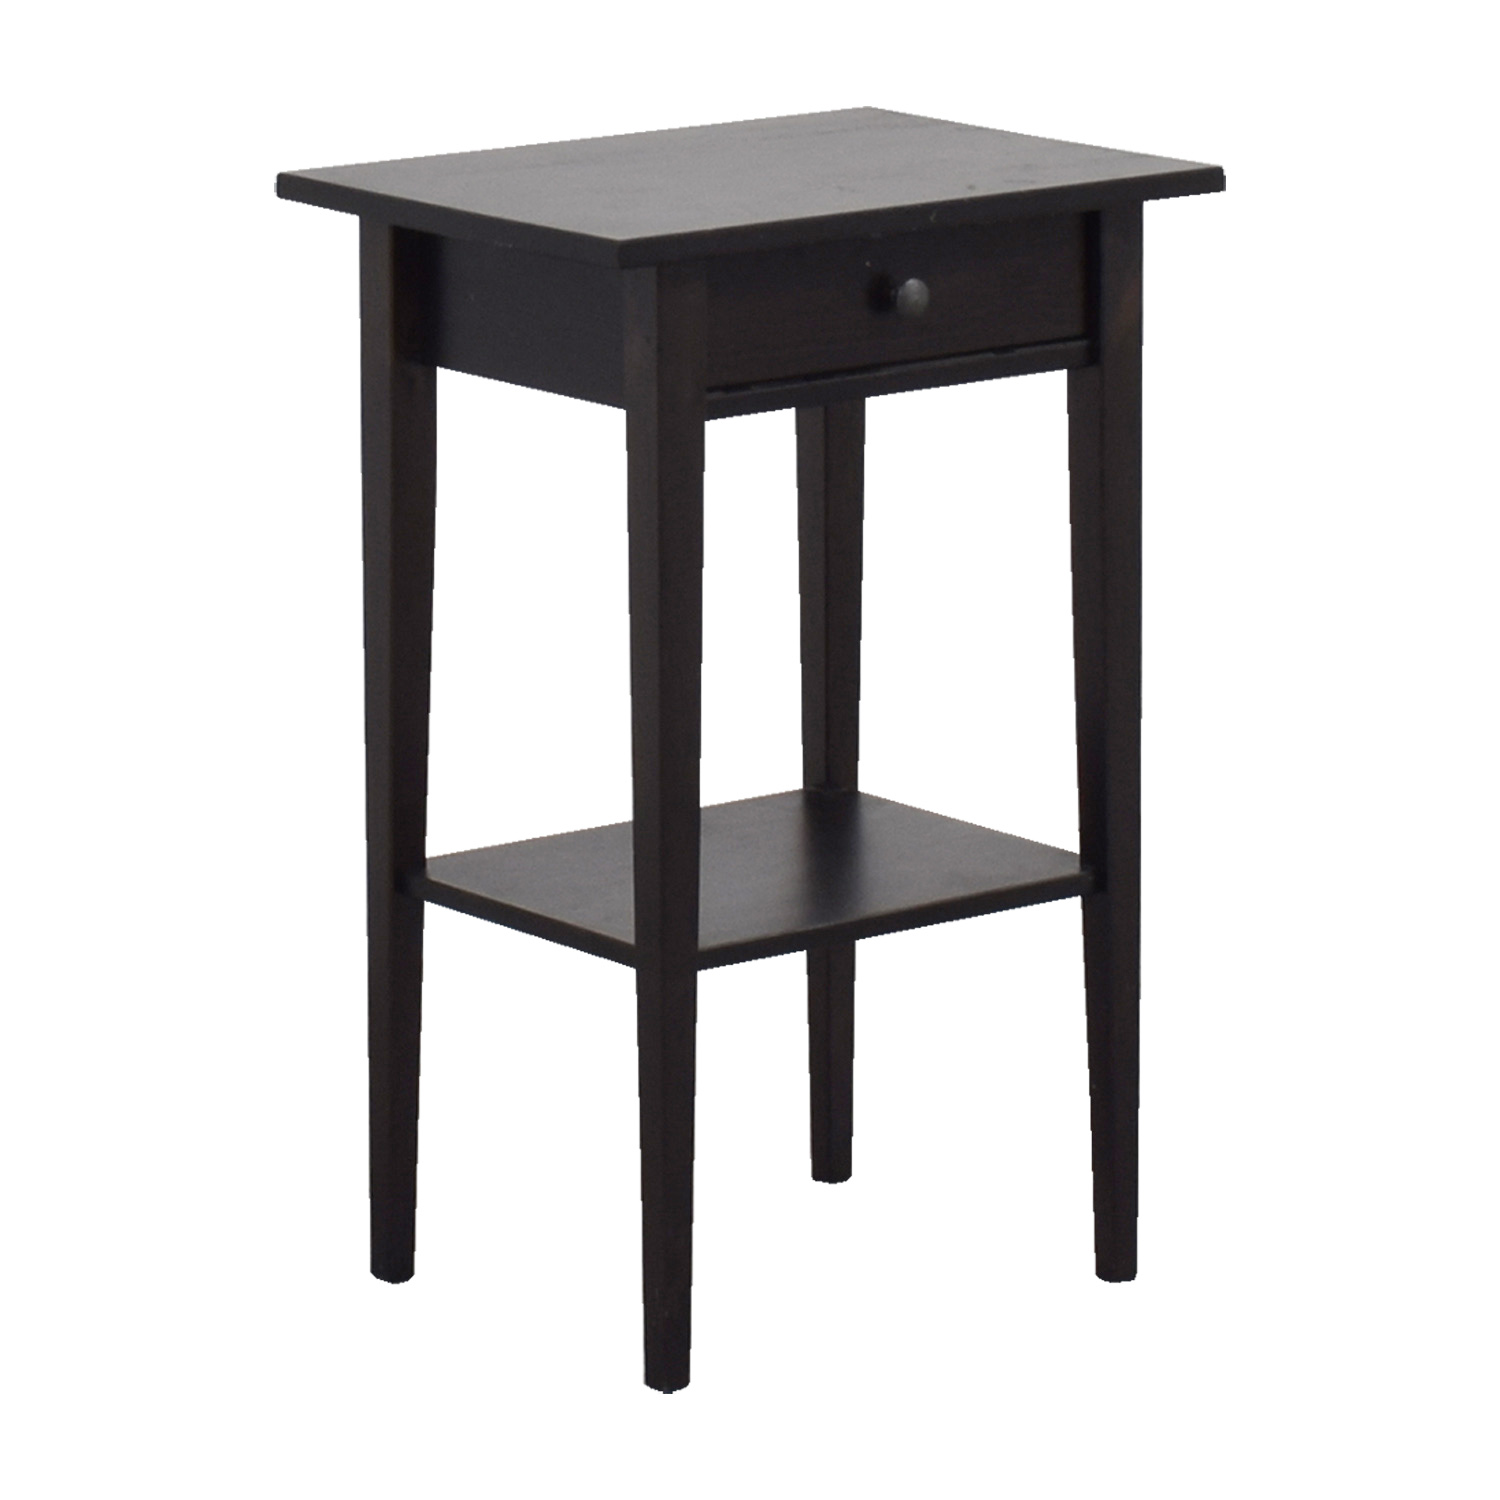 80 off ikea ikea single drawer end table tables. Black Bedroom Furniture Sets. Home Design Ideas